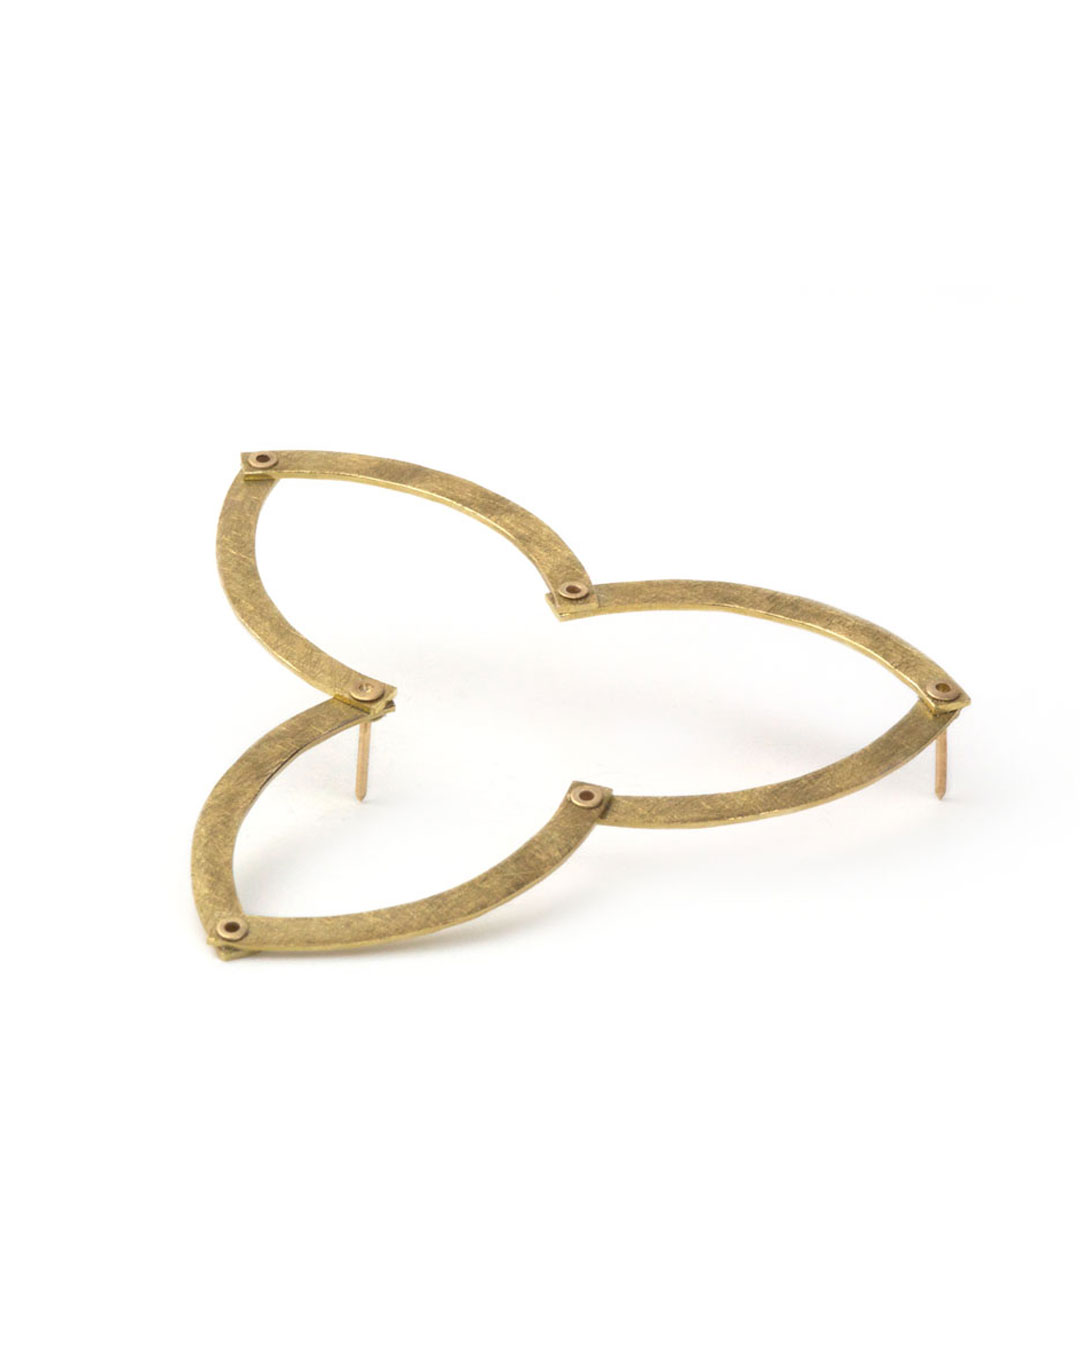 Karola Torkos, Bloom, 2006/2007, brooch; 9ct gold, 60 x 60 x 1 mm, €550